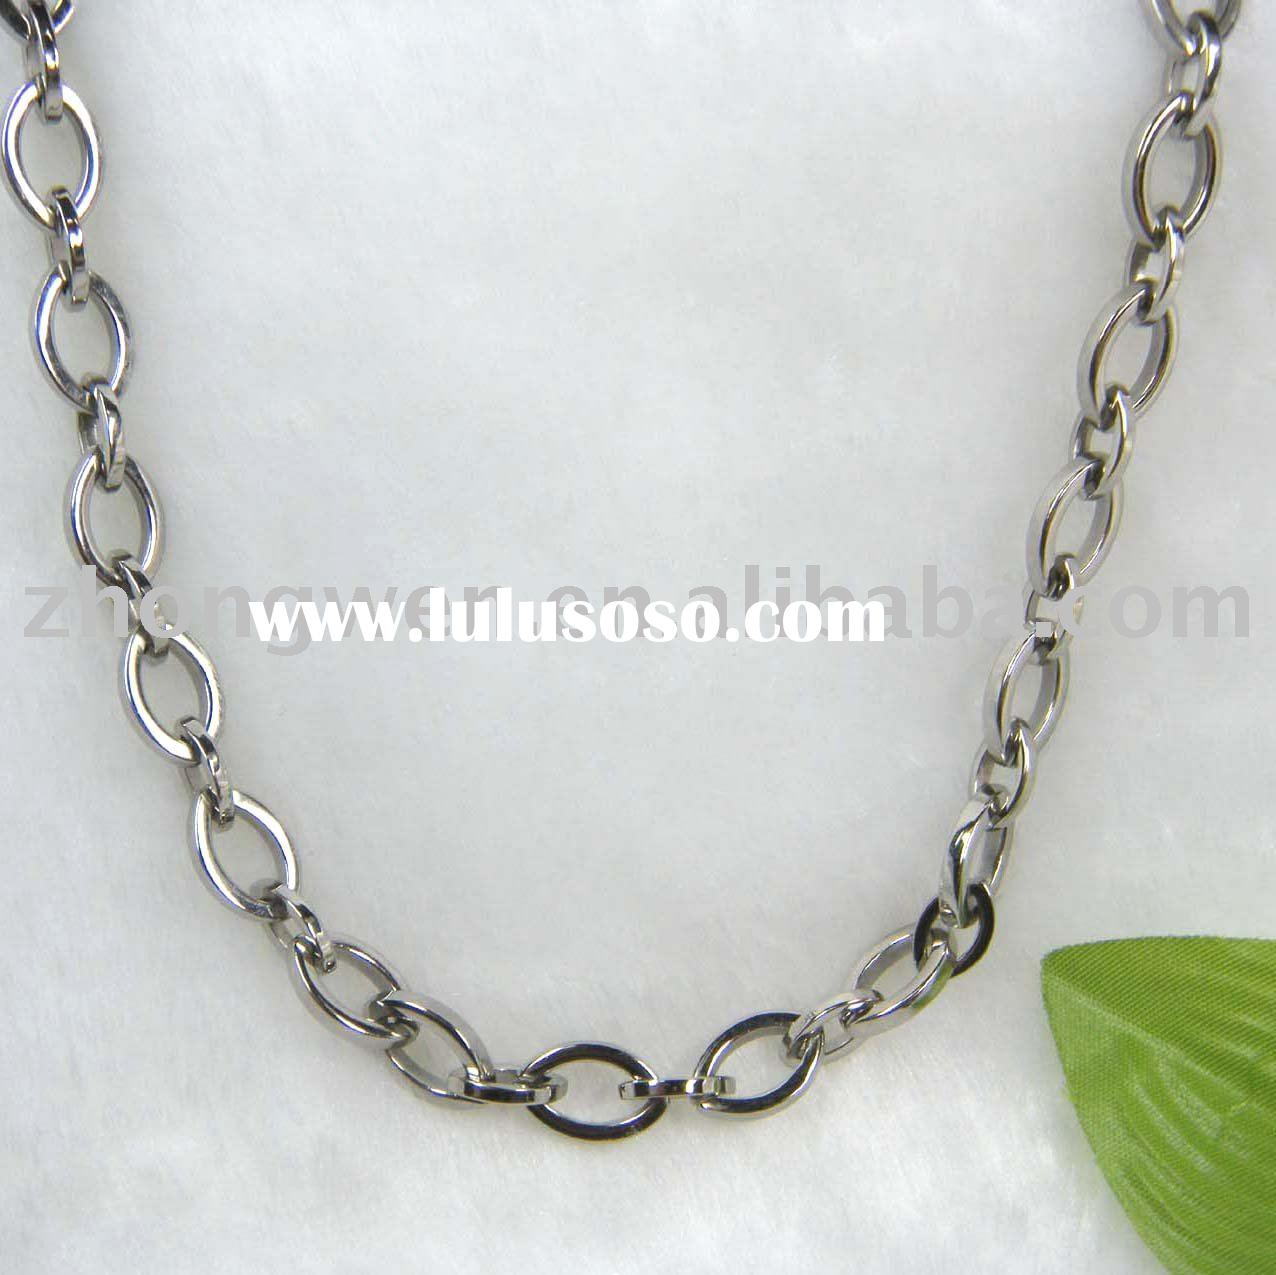 Chain  /  Stainless steel jewelry